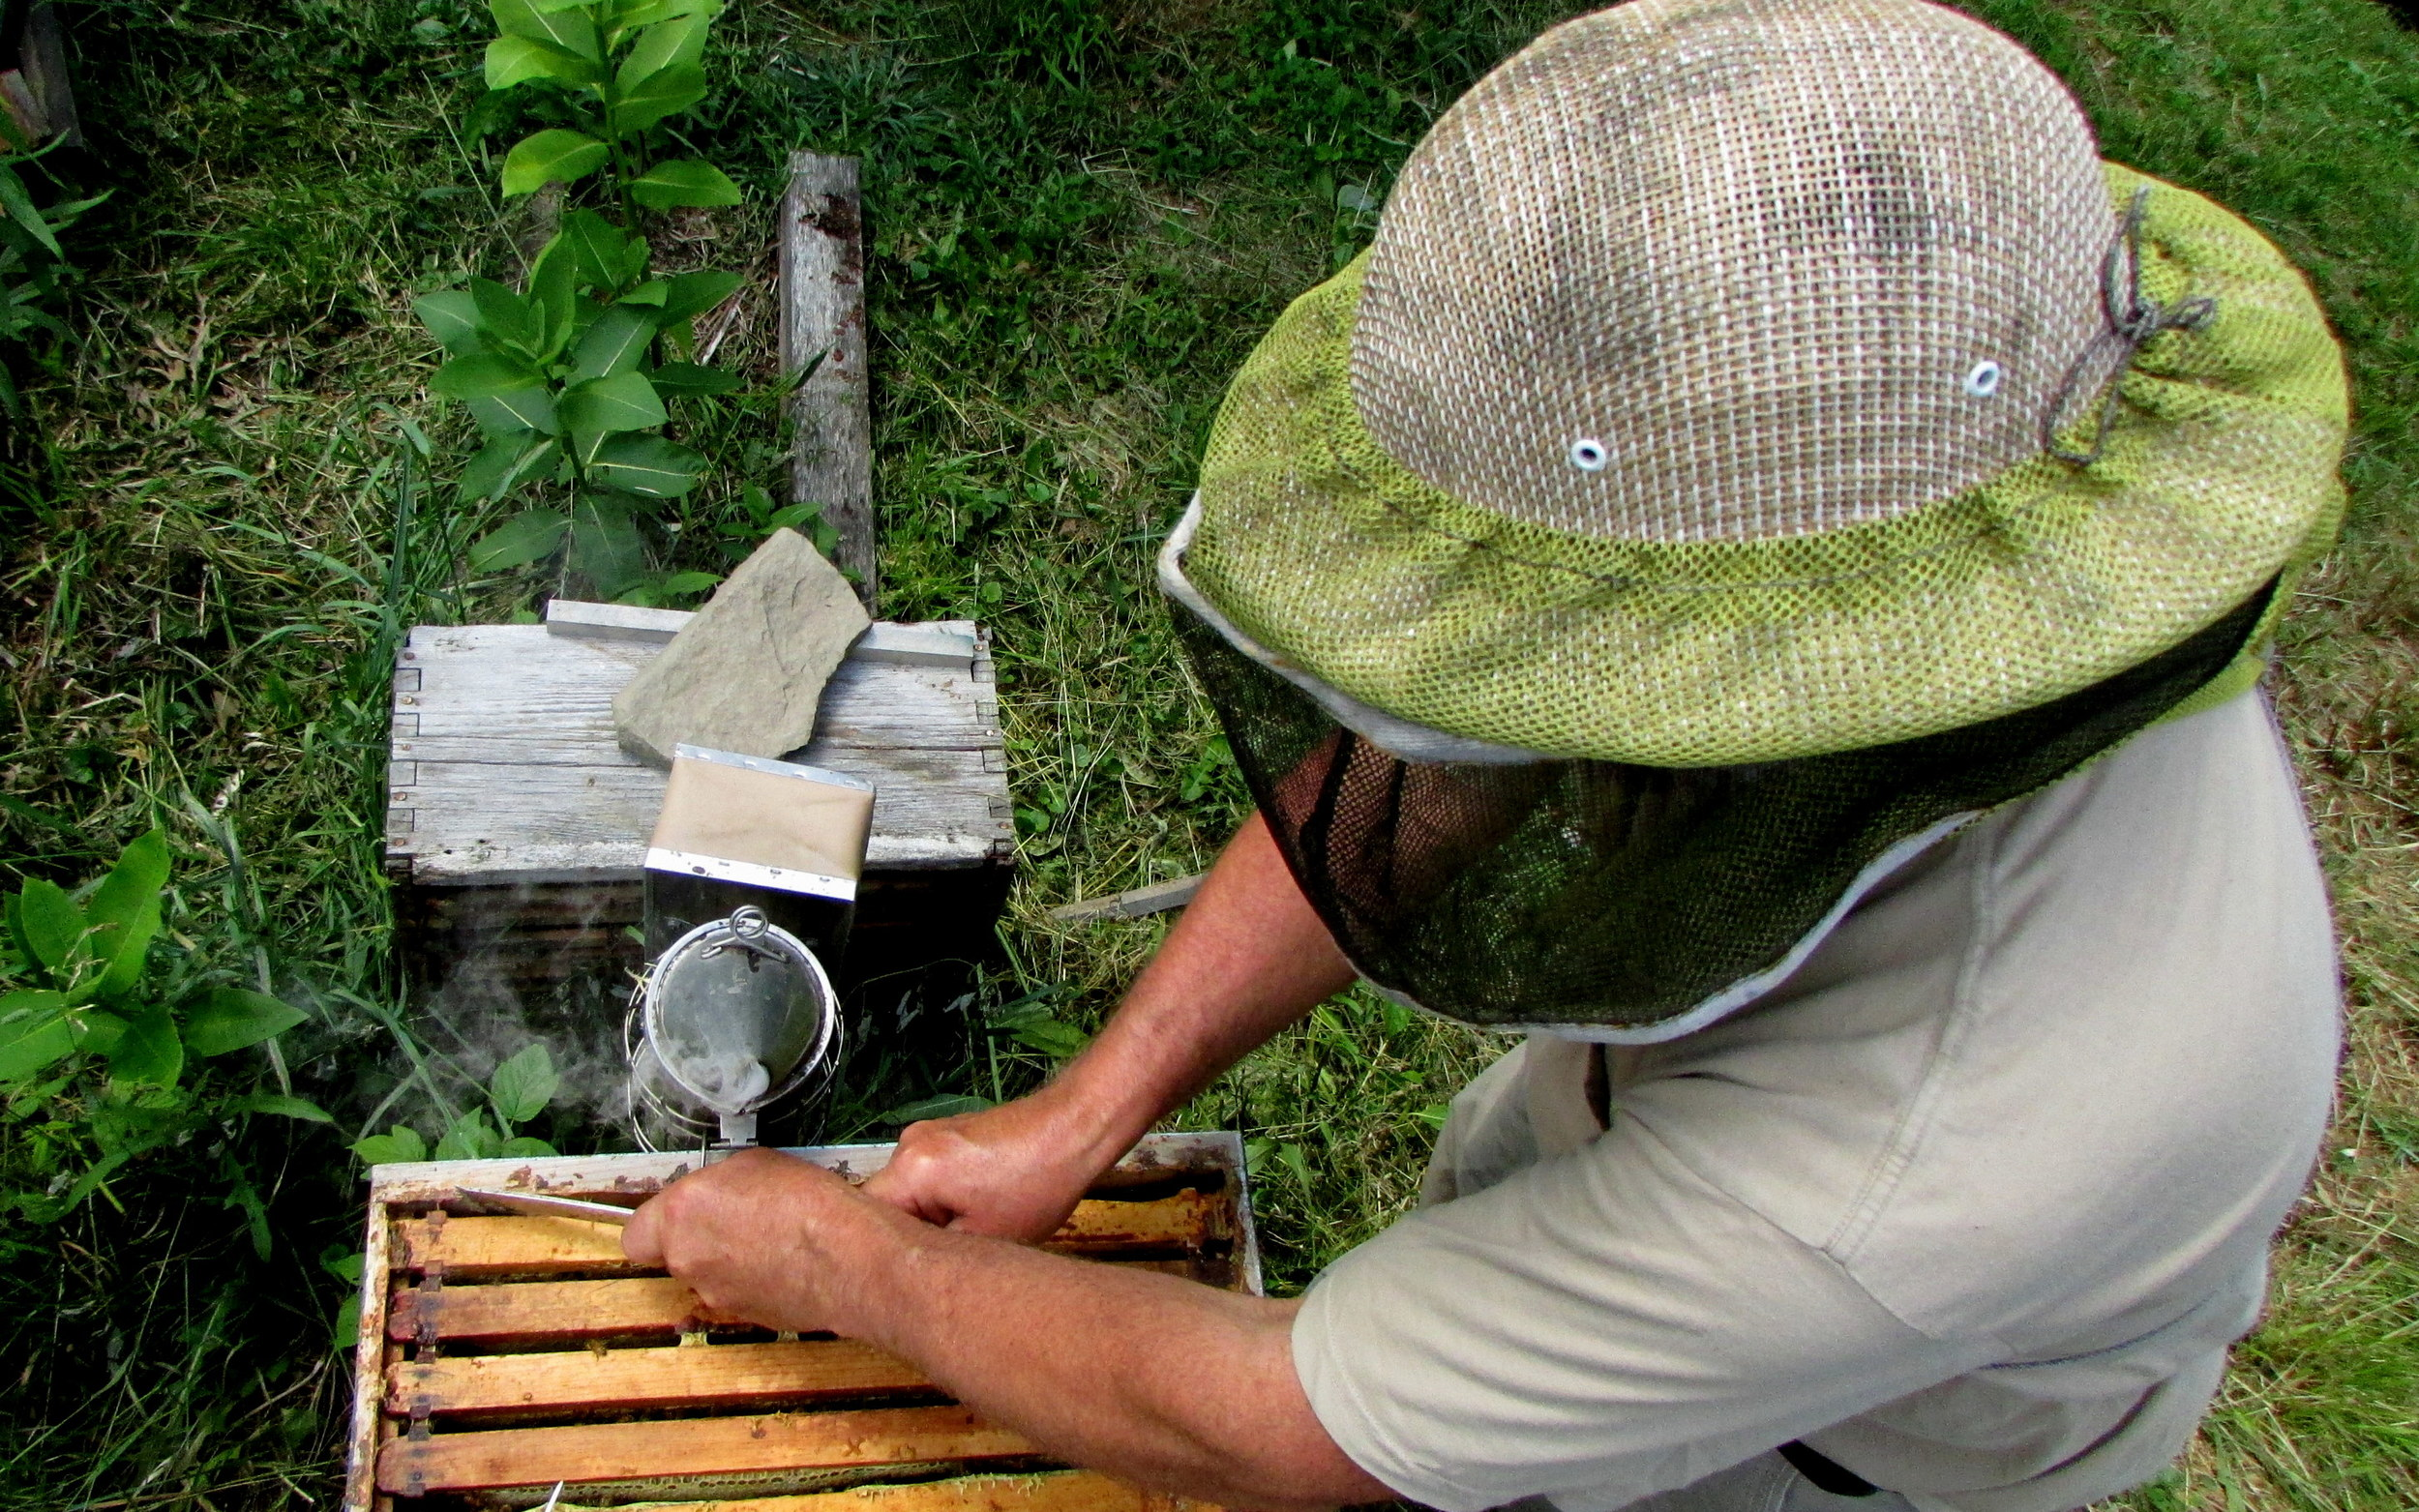 I got some great action shots of Dad looking all beekeeper-y.